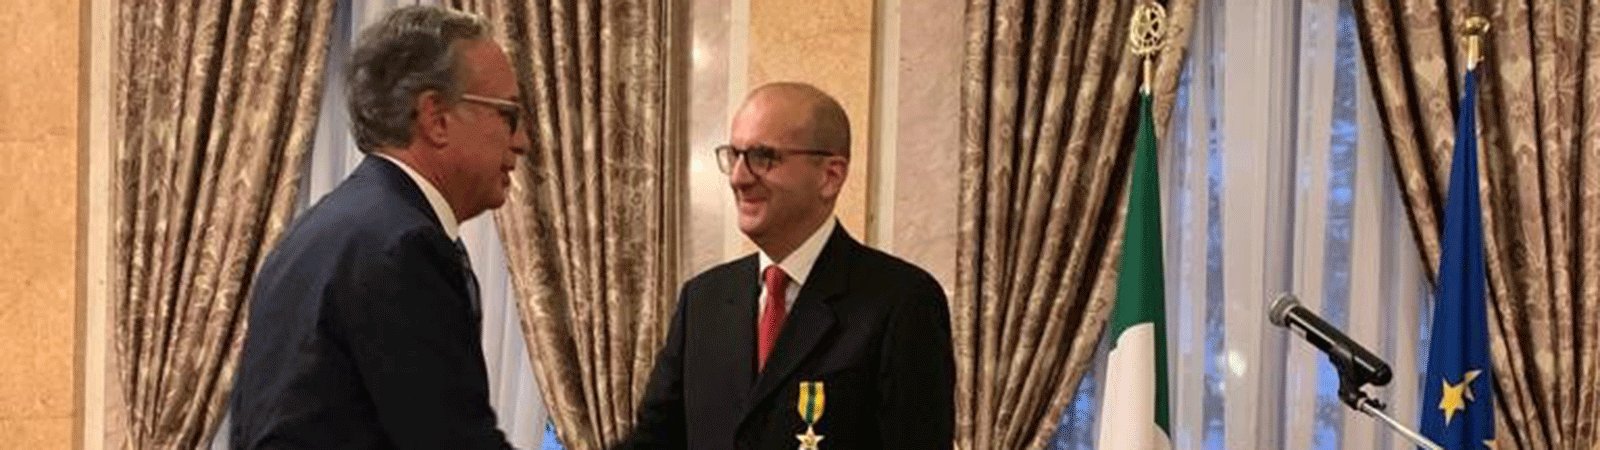 Michele Pulpito (SACMI) receives the Stella al Merito del Lavoro from the Presidency of the Italian Republic